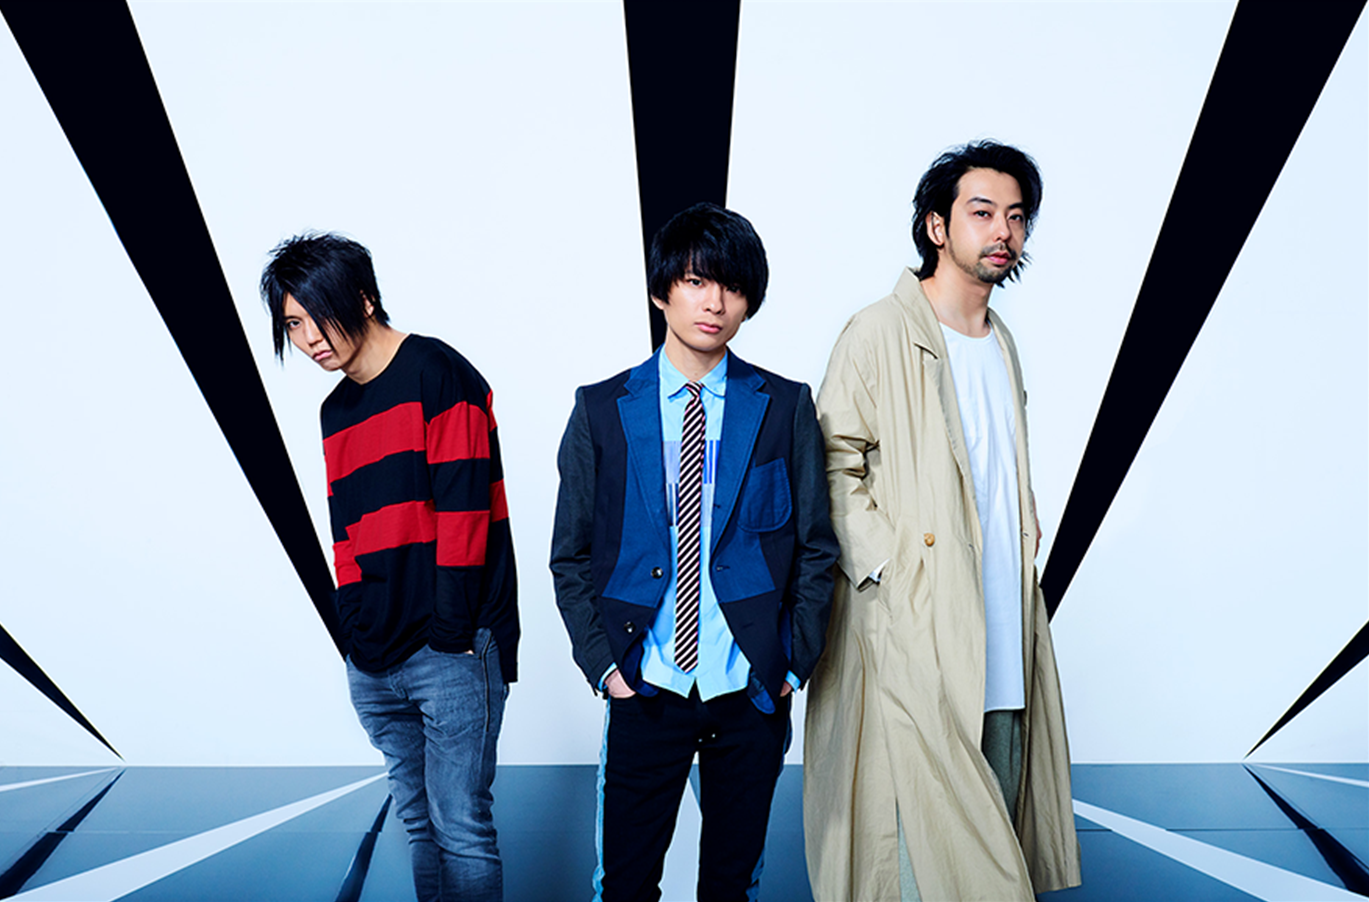 JRock247-UNISON SQUARE GARDEN-MODE MOOD MODE-review-2